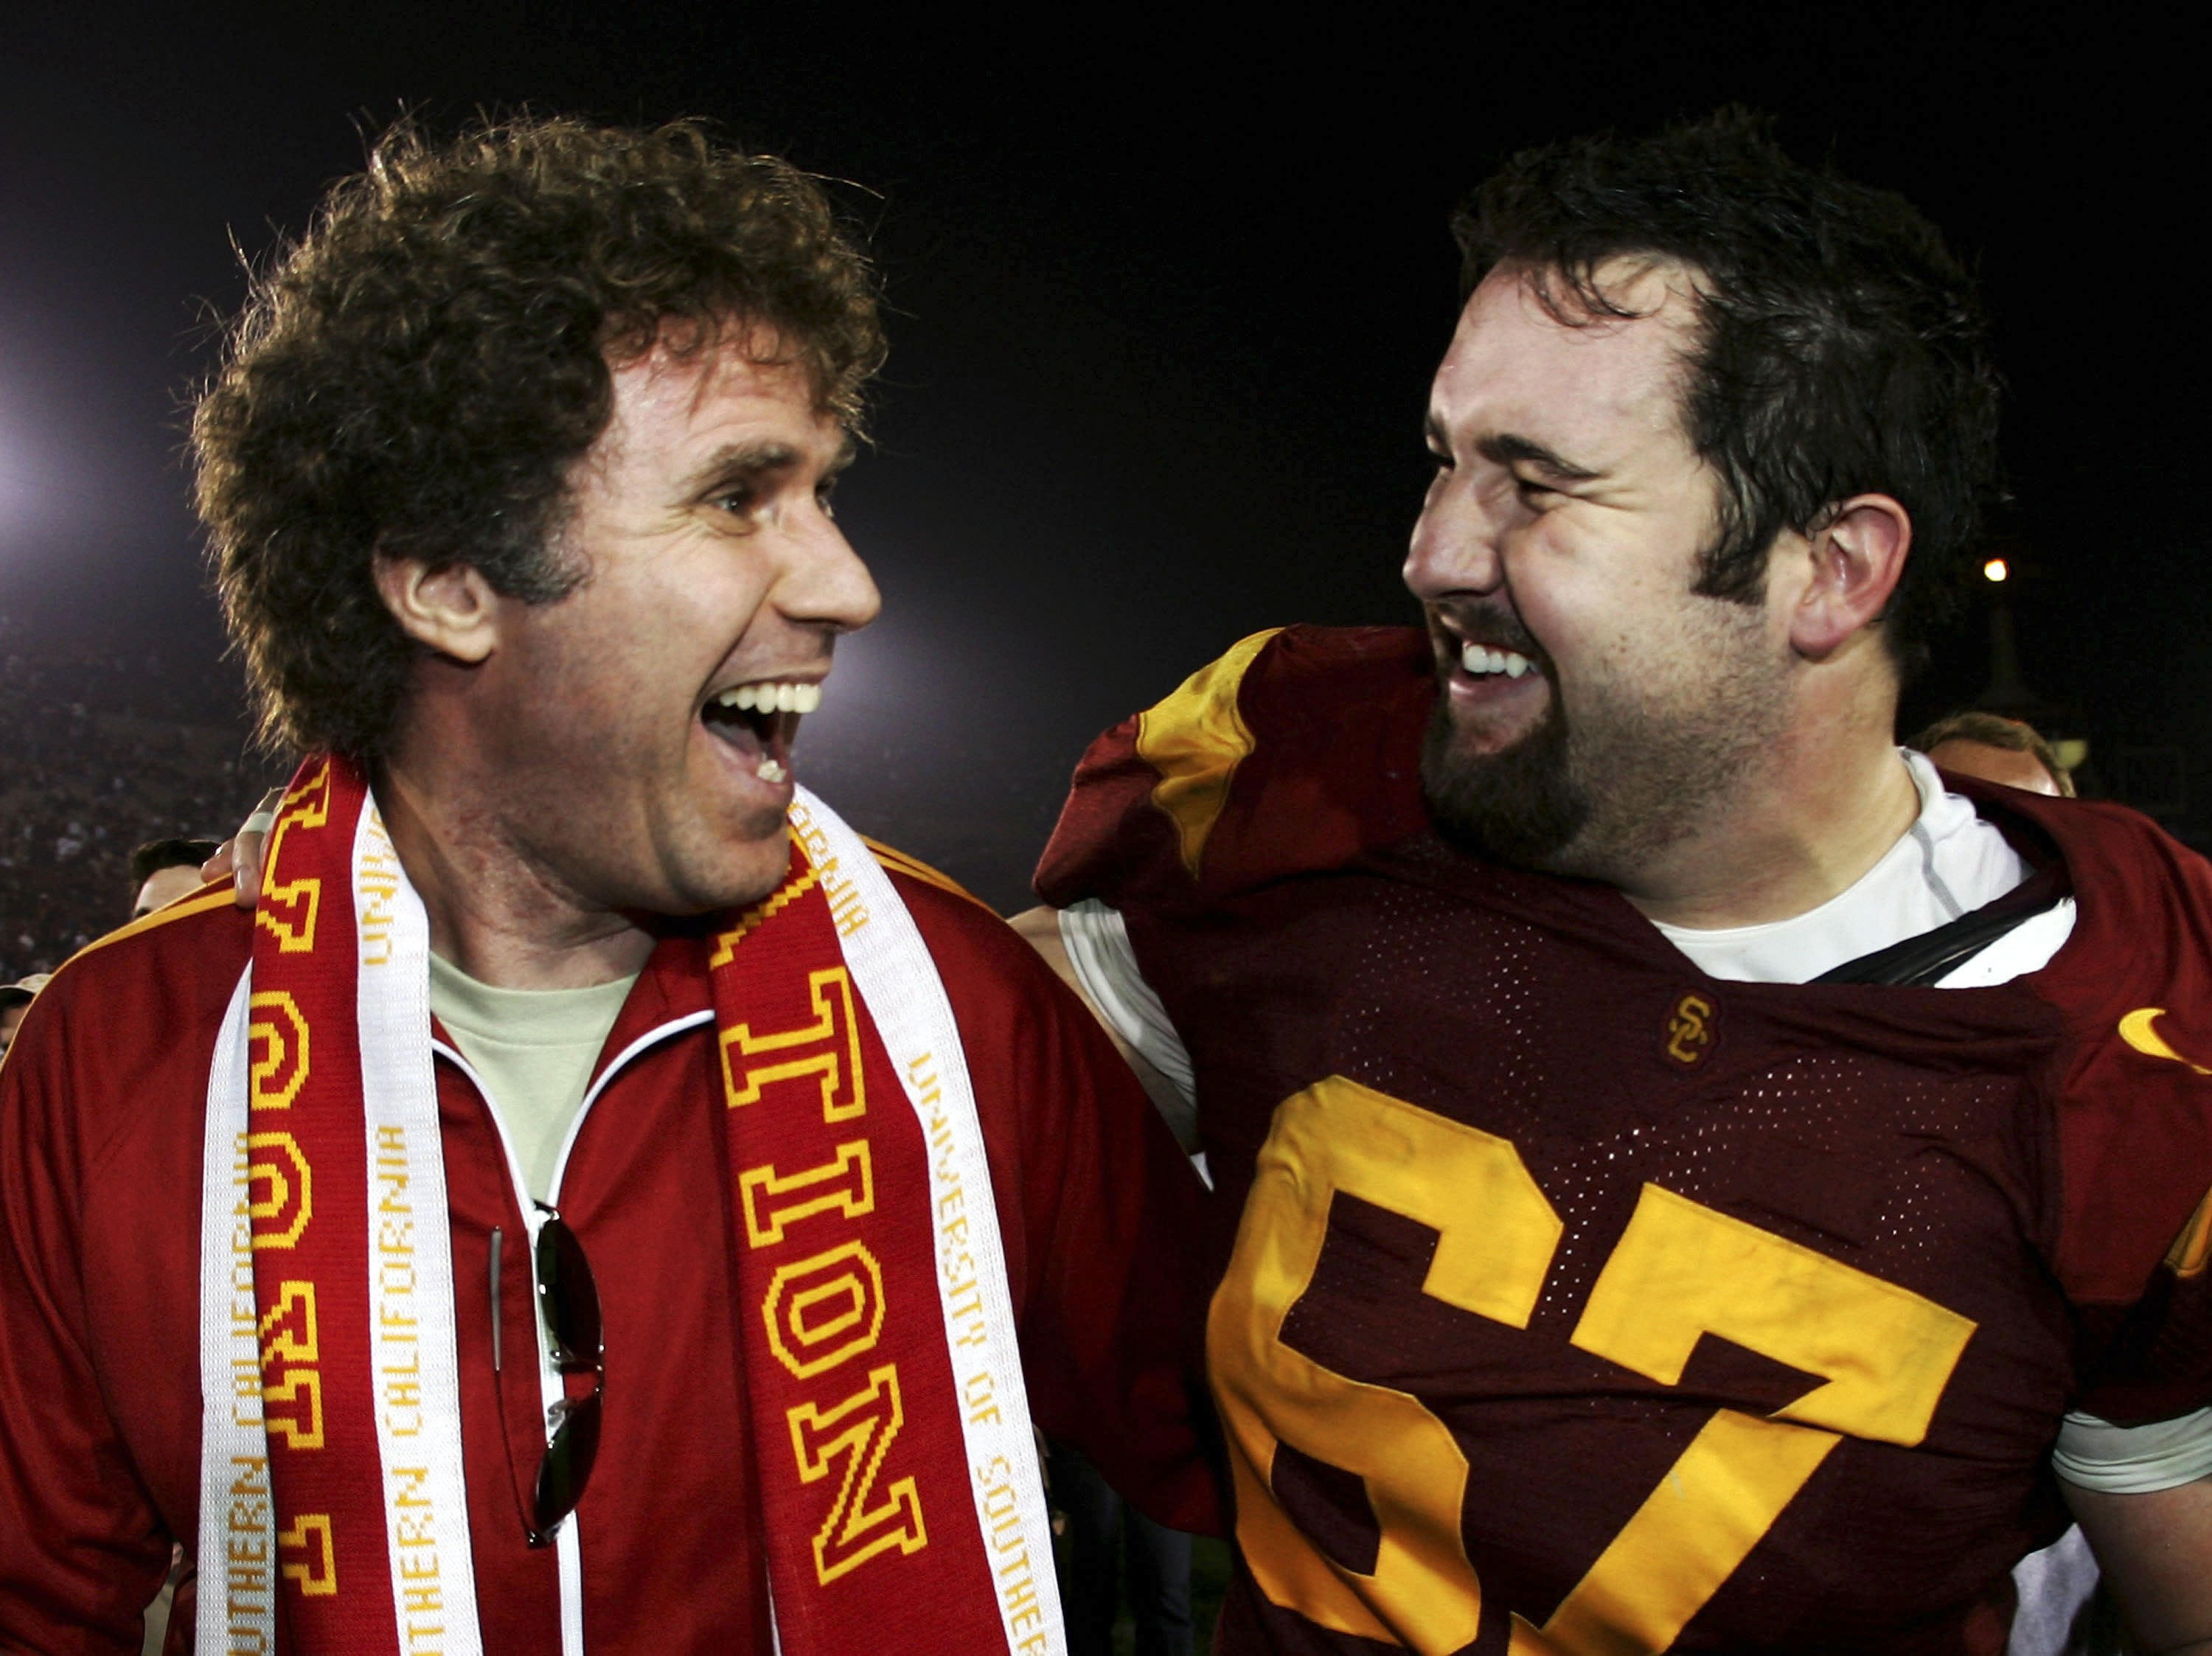 Will Ferrell - USC celebrity college football fans